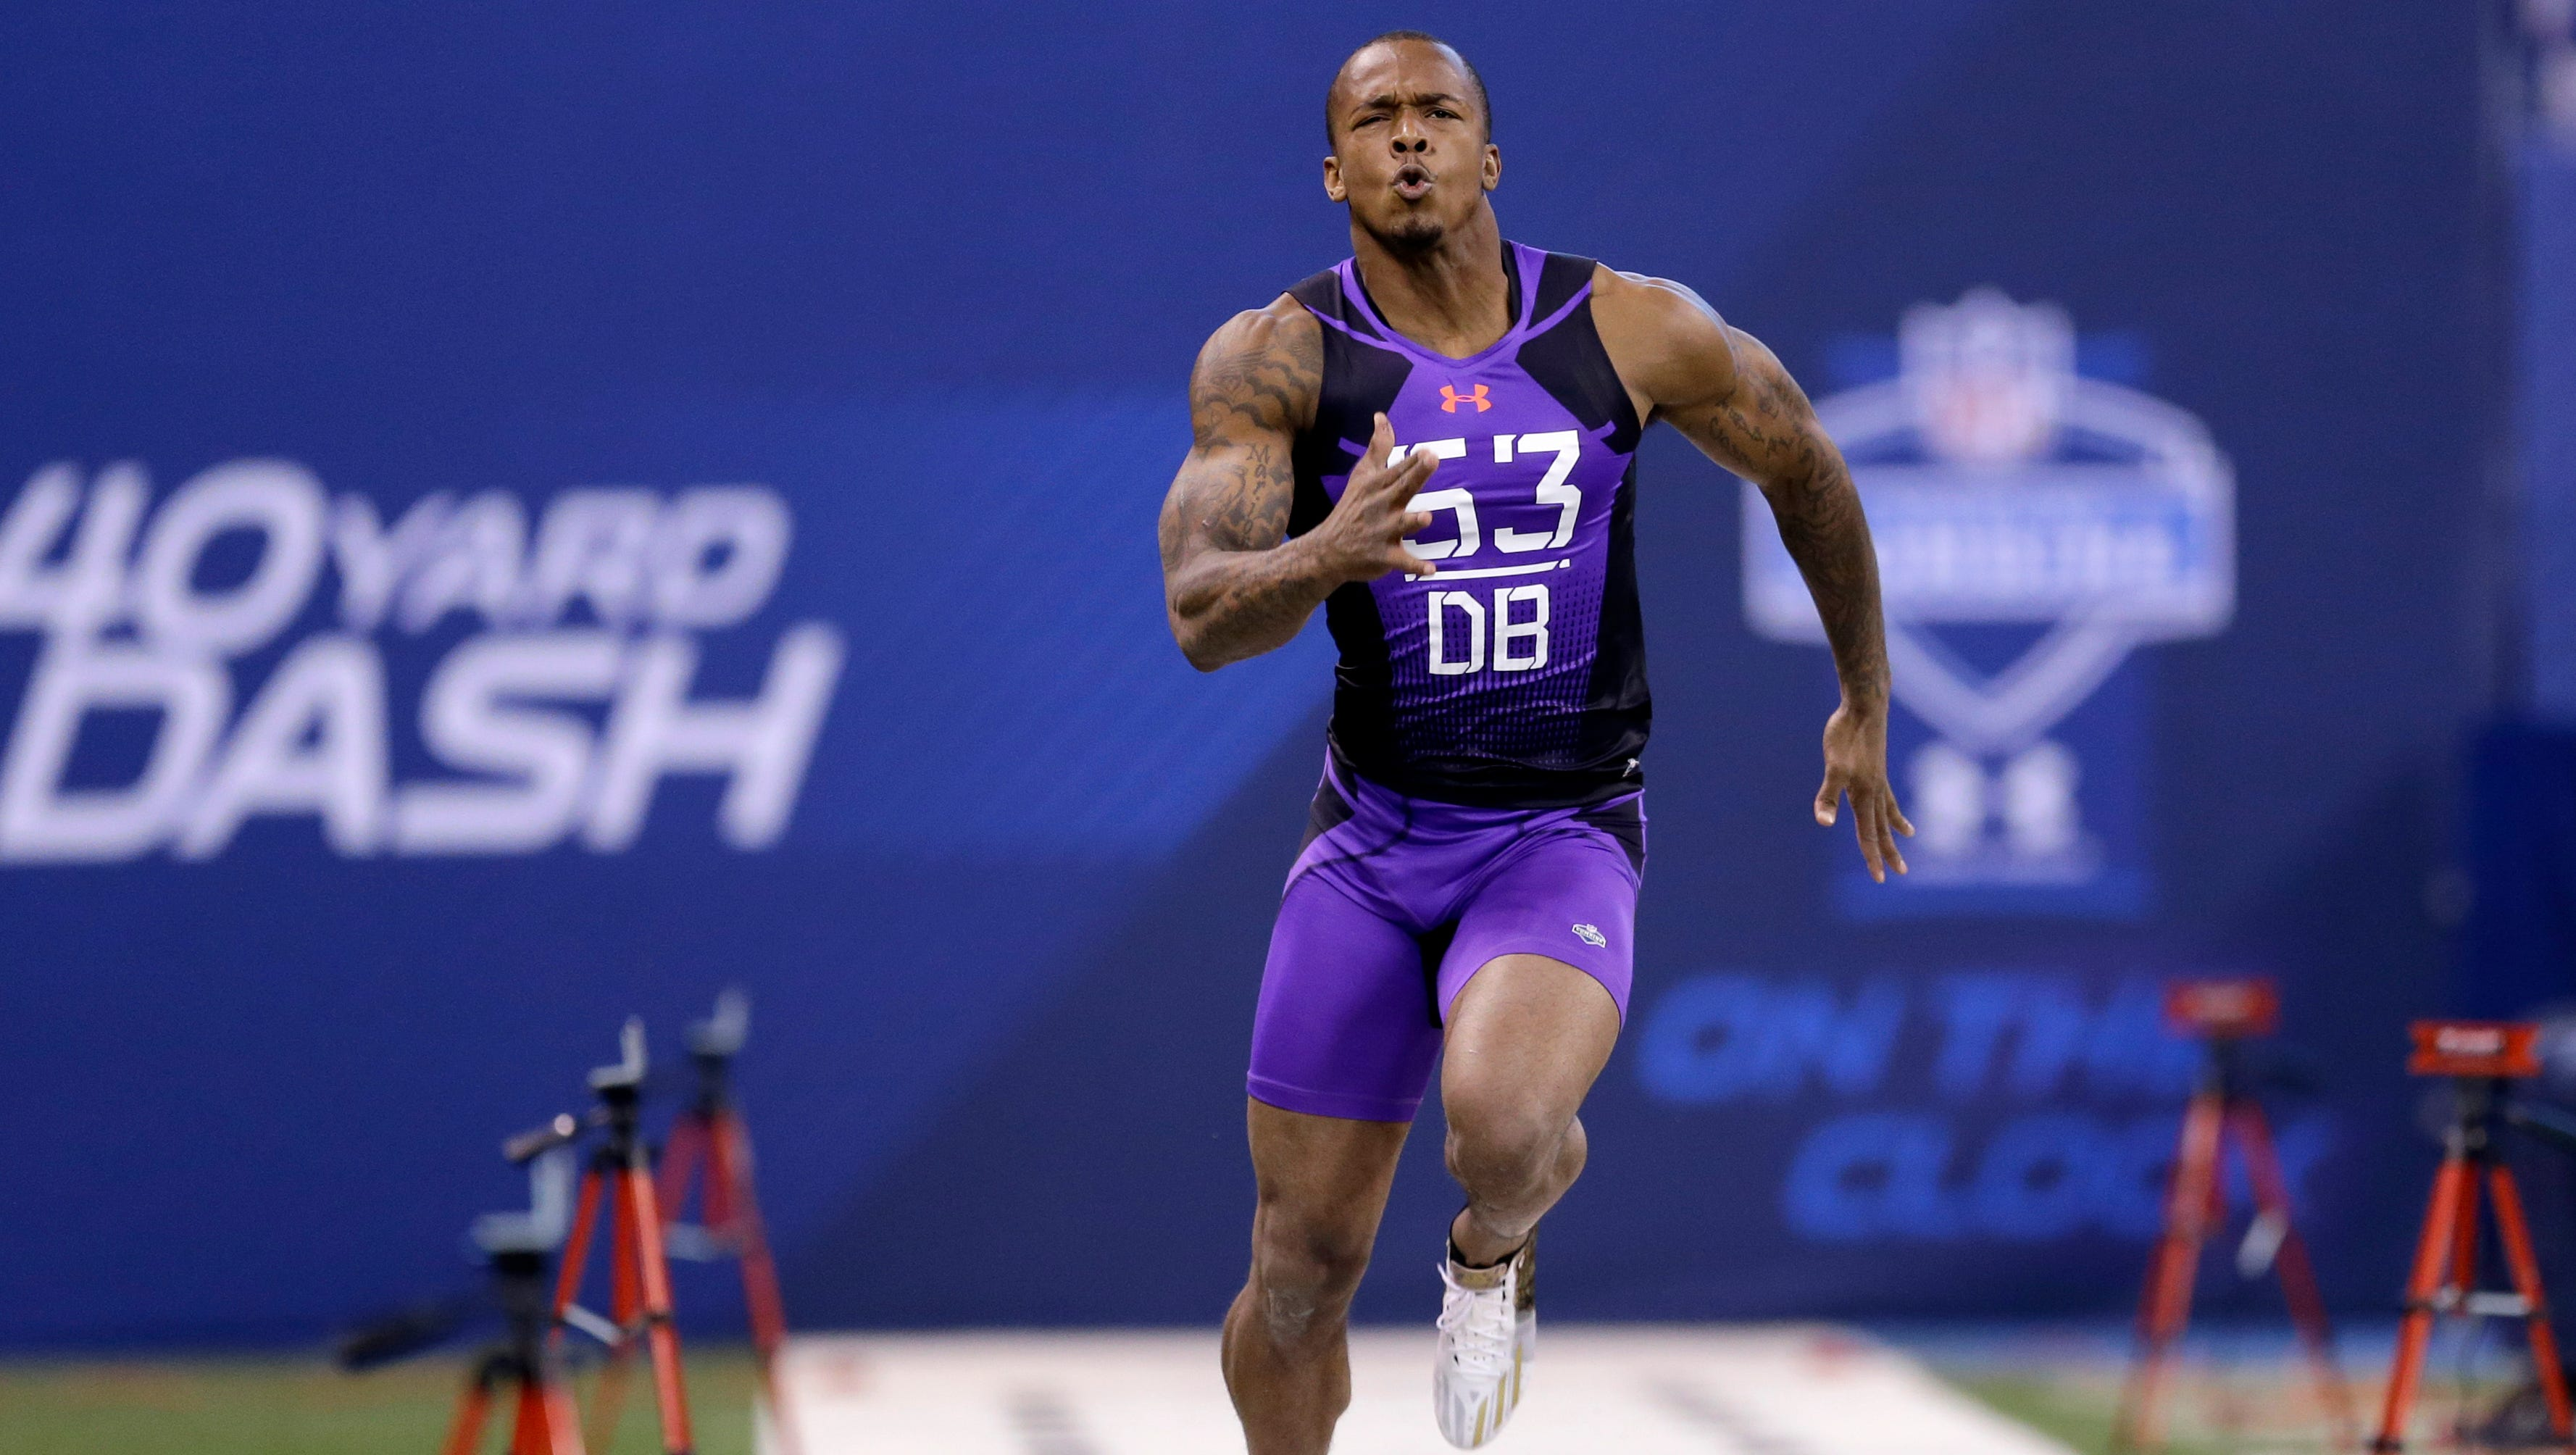 nfl draft diary  sick at combine  fsu u0026 39 s p j  williams